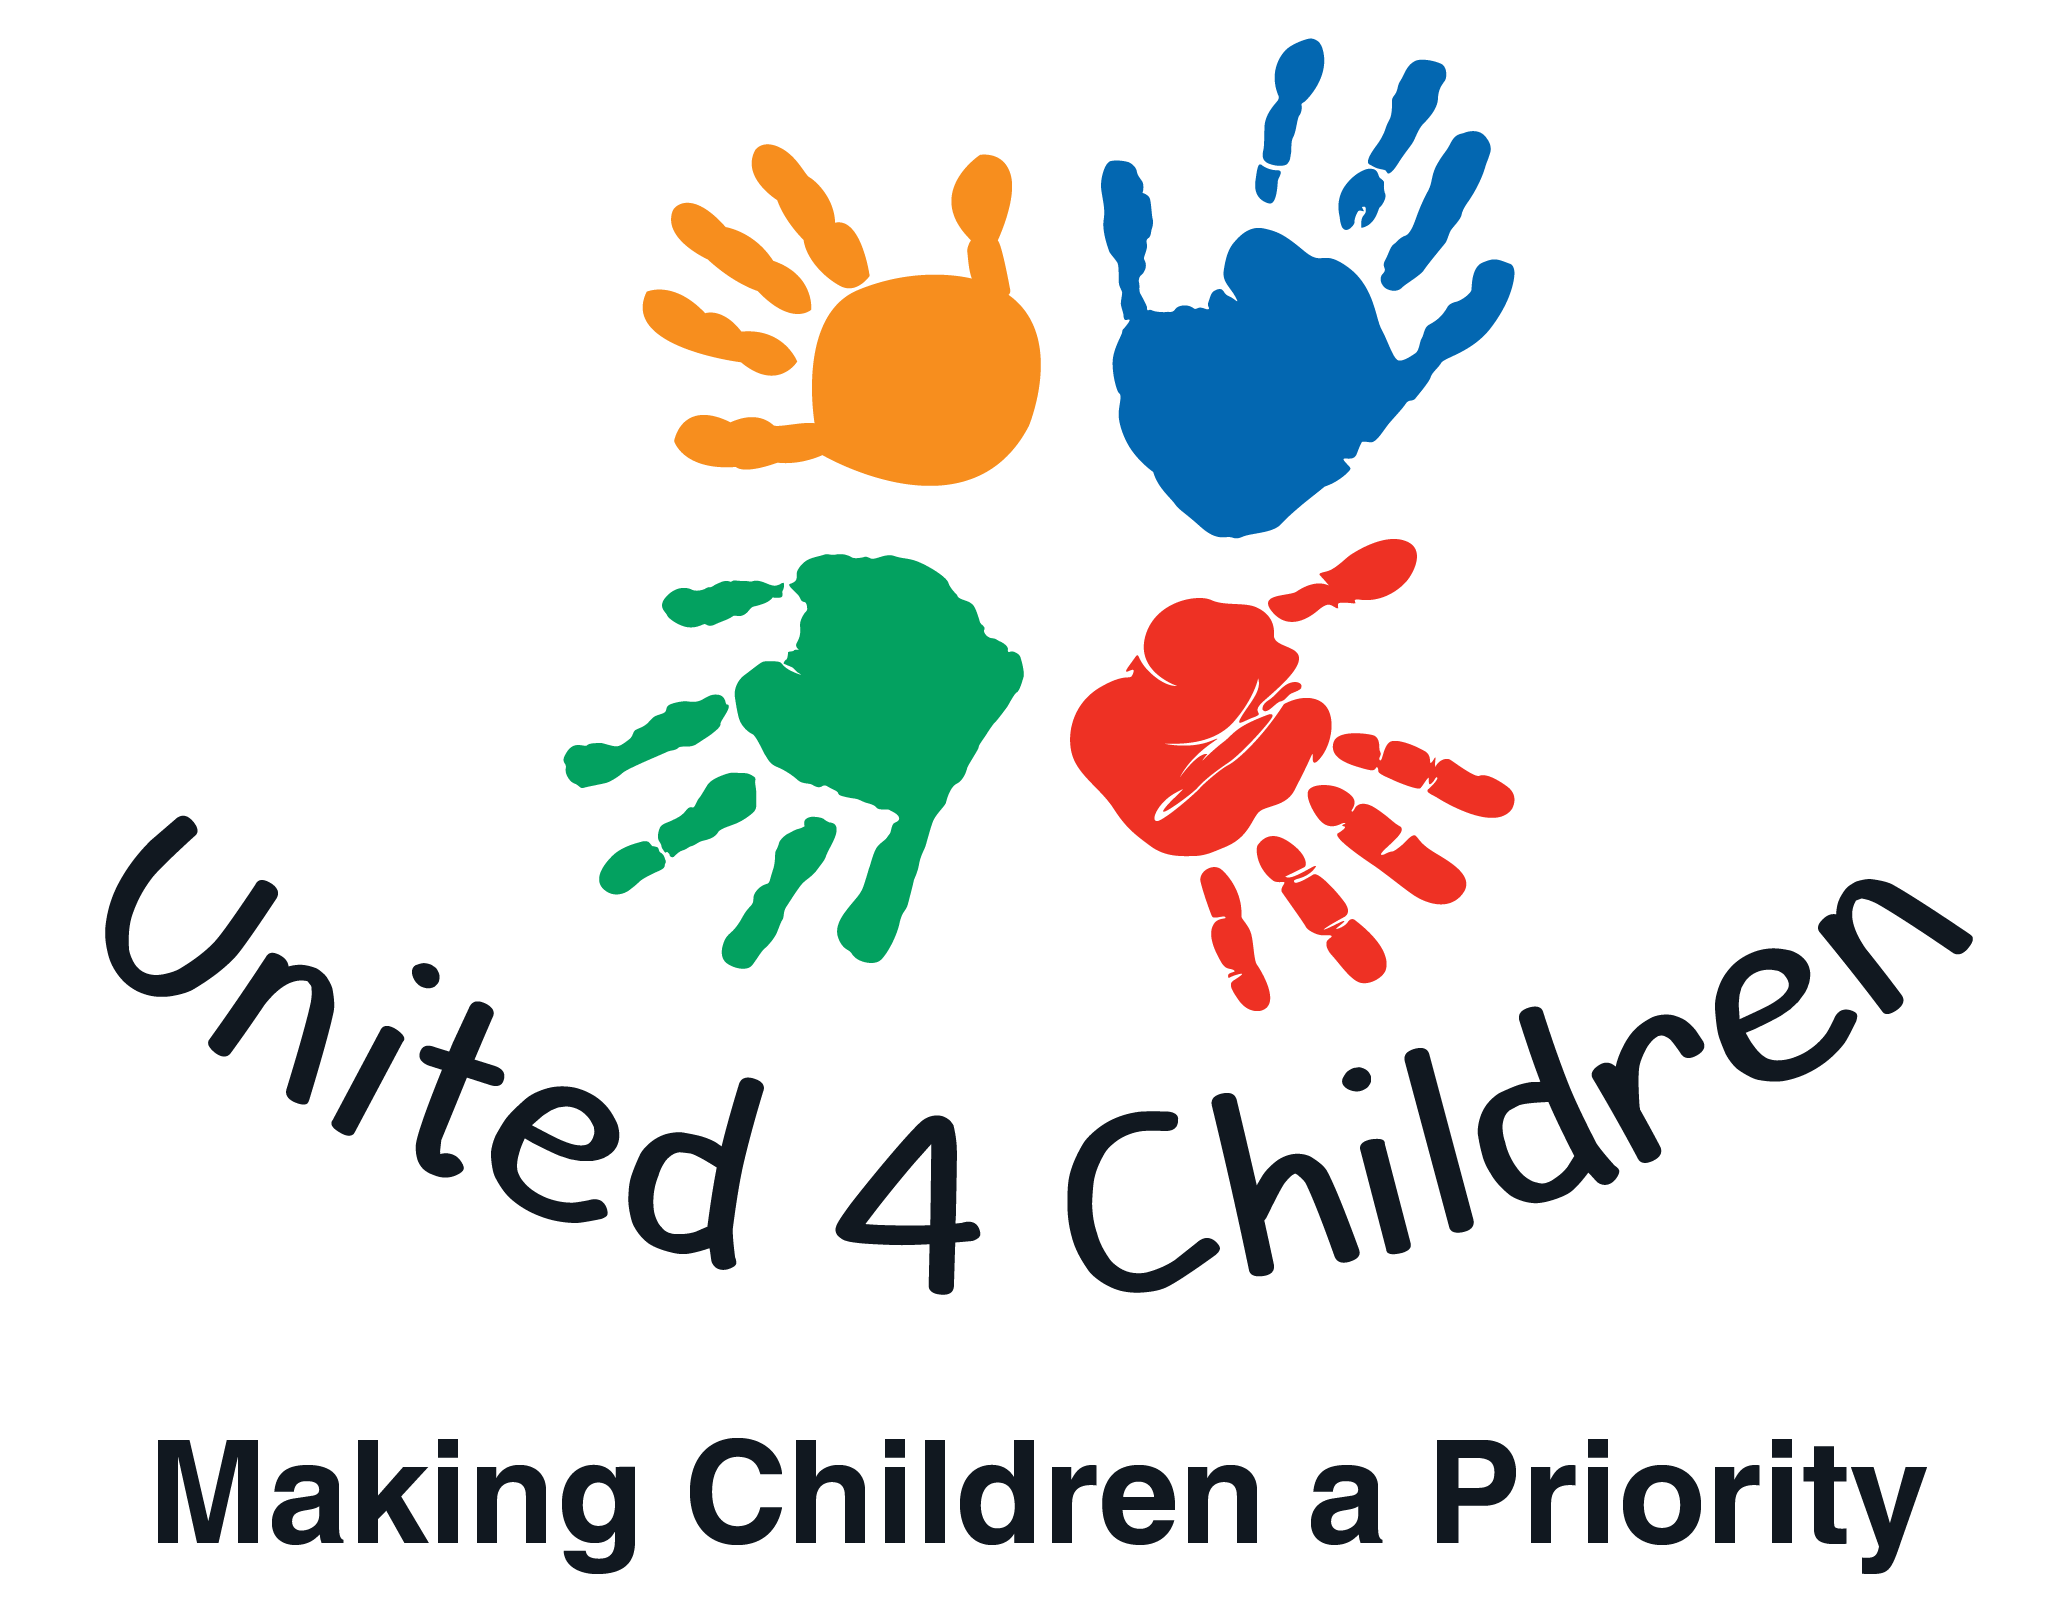 United 4 Children